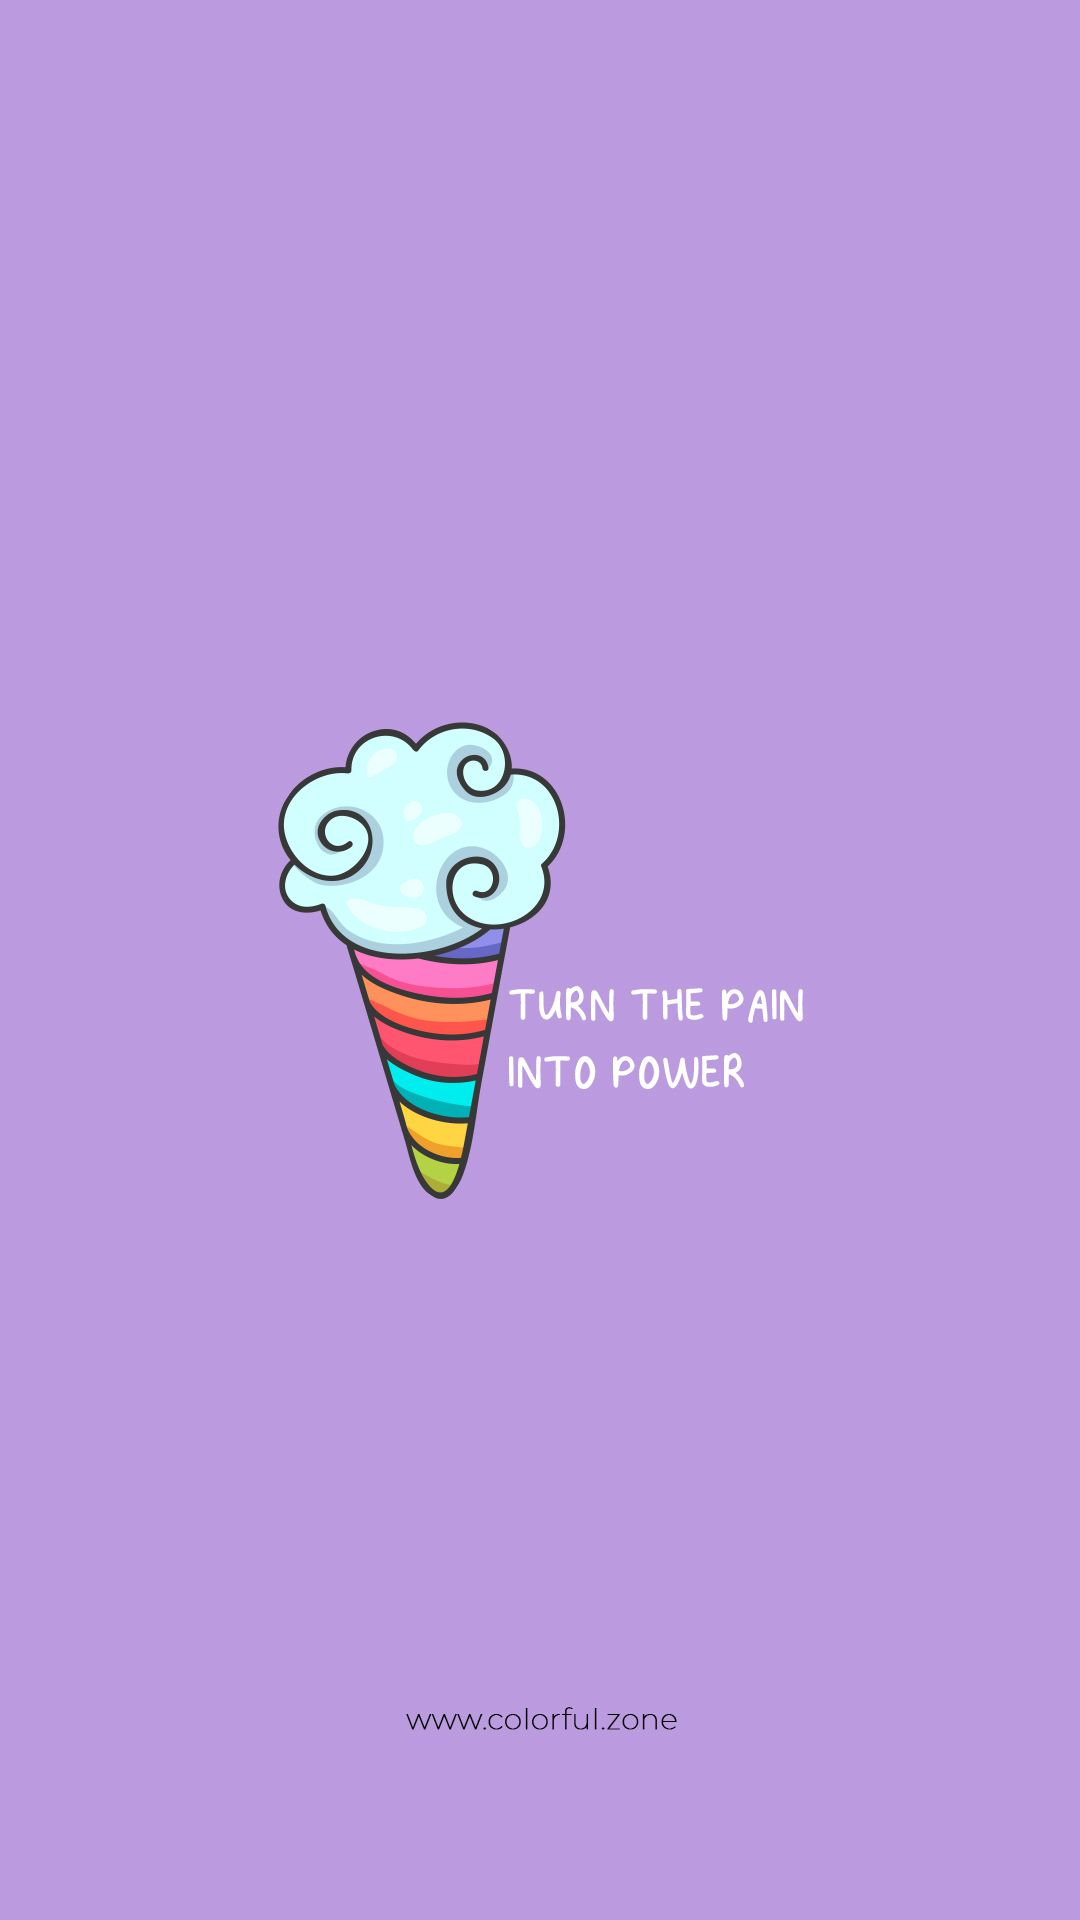 Turn the pain into power :)